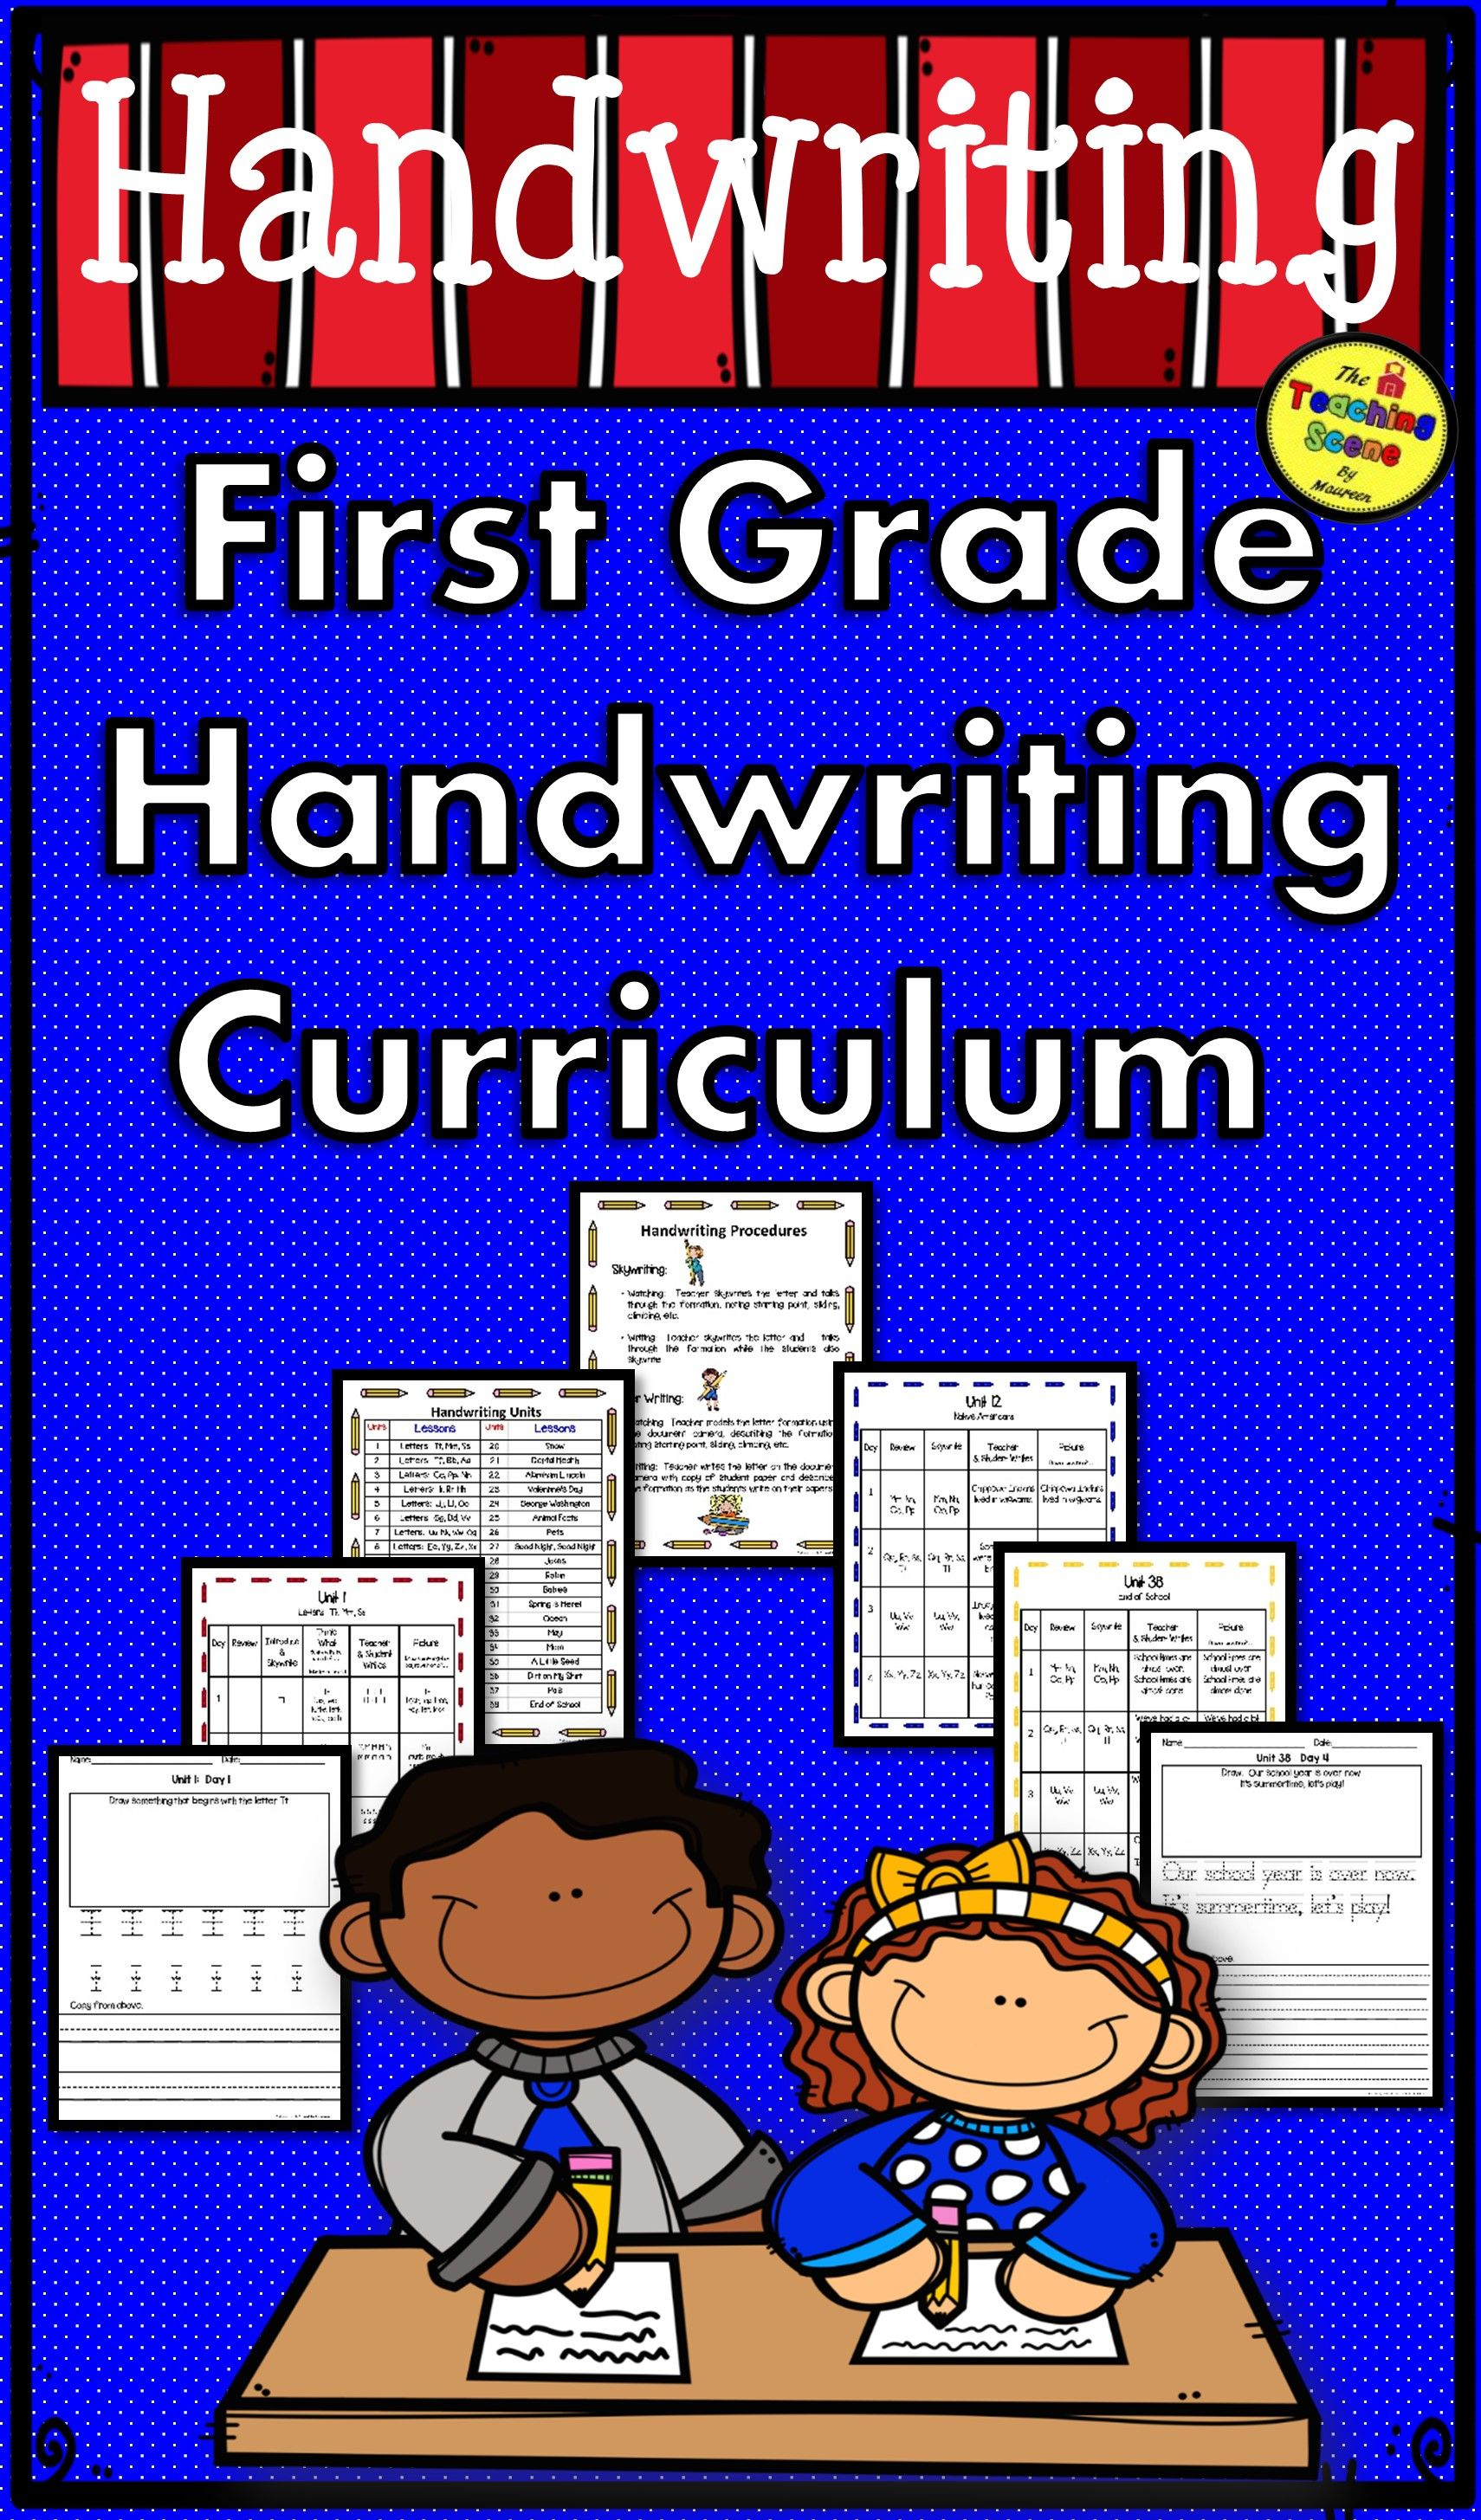 Complete First Grade Handwriting Curriculum